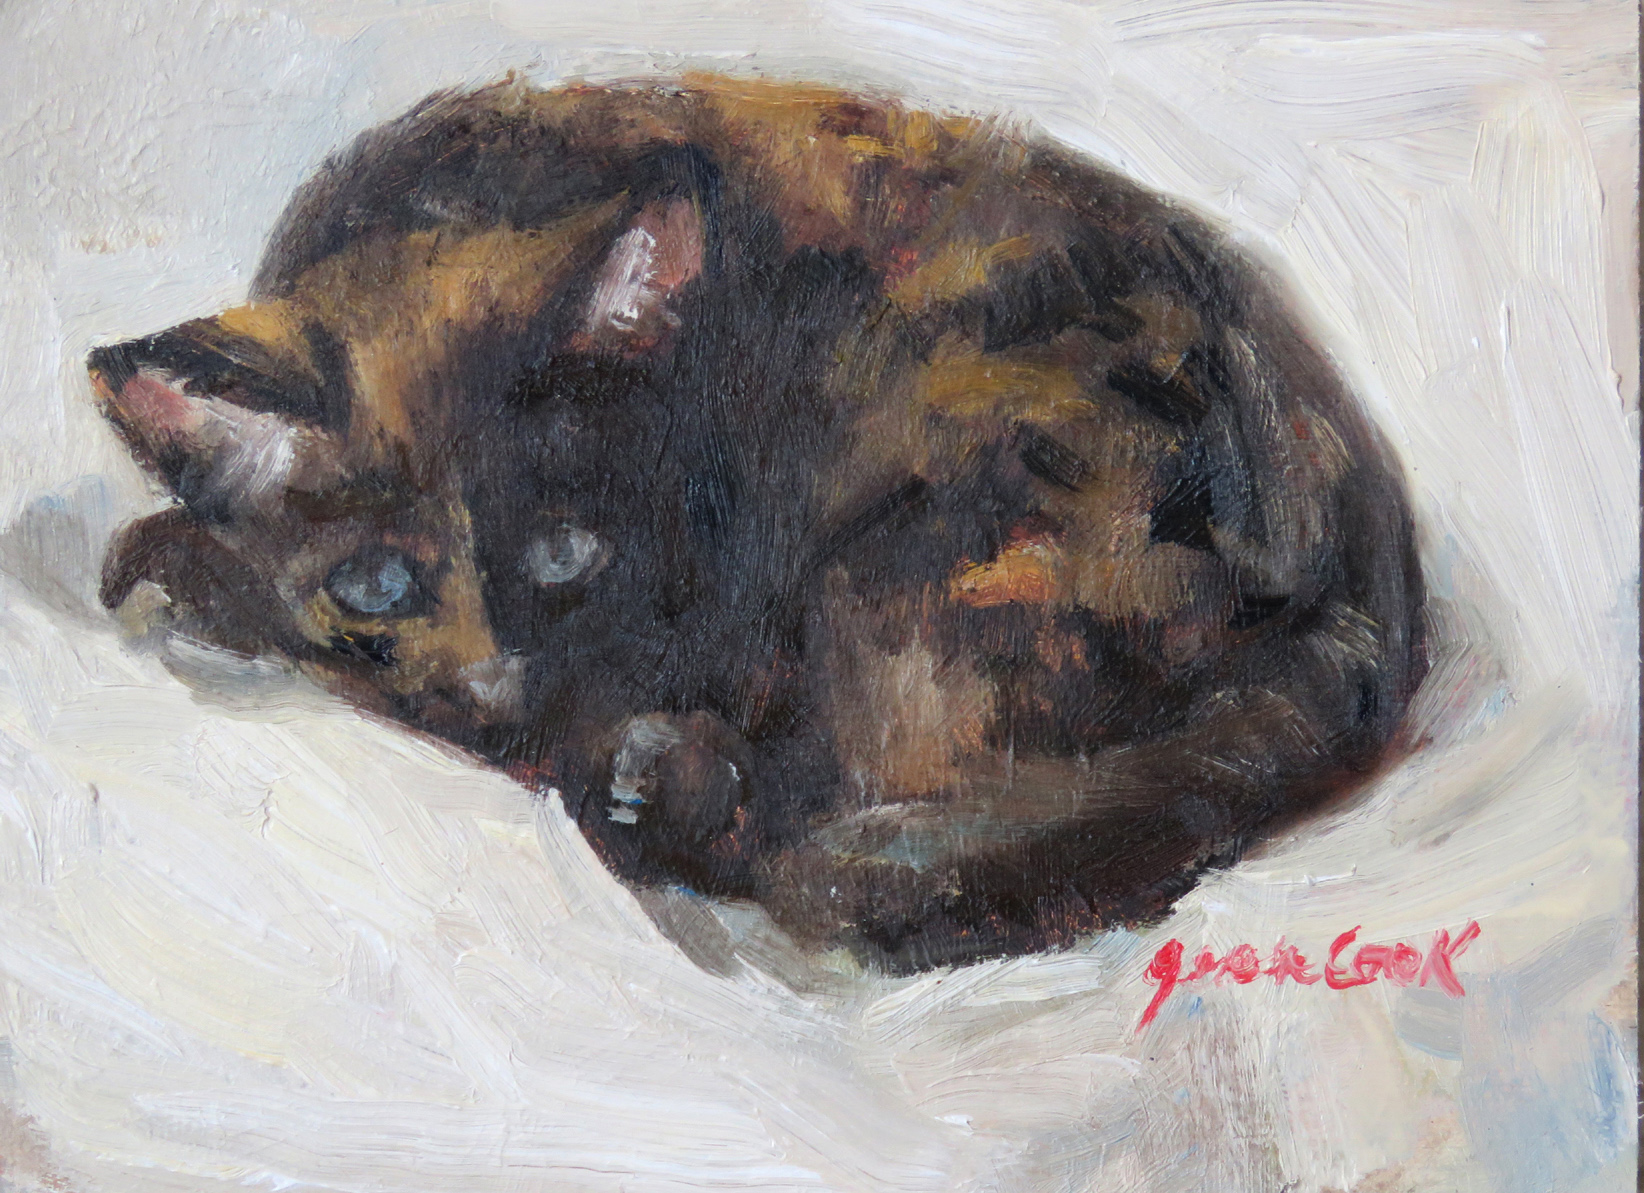 Penny at Naptime by  Jean Cook - Masterpiece Online